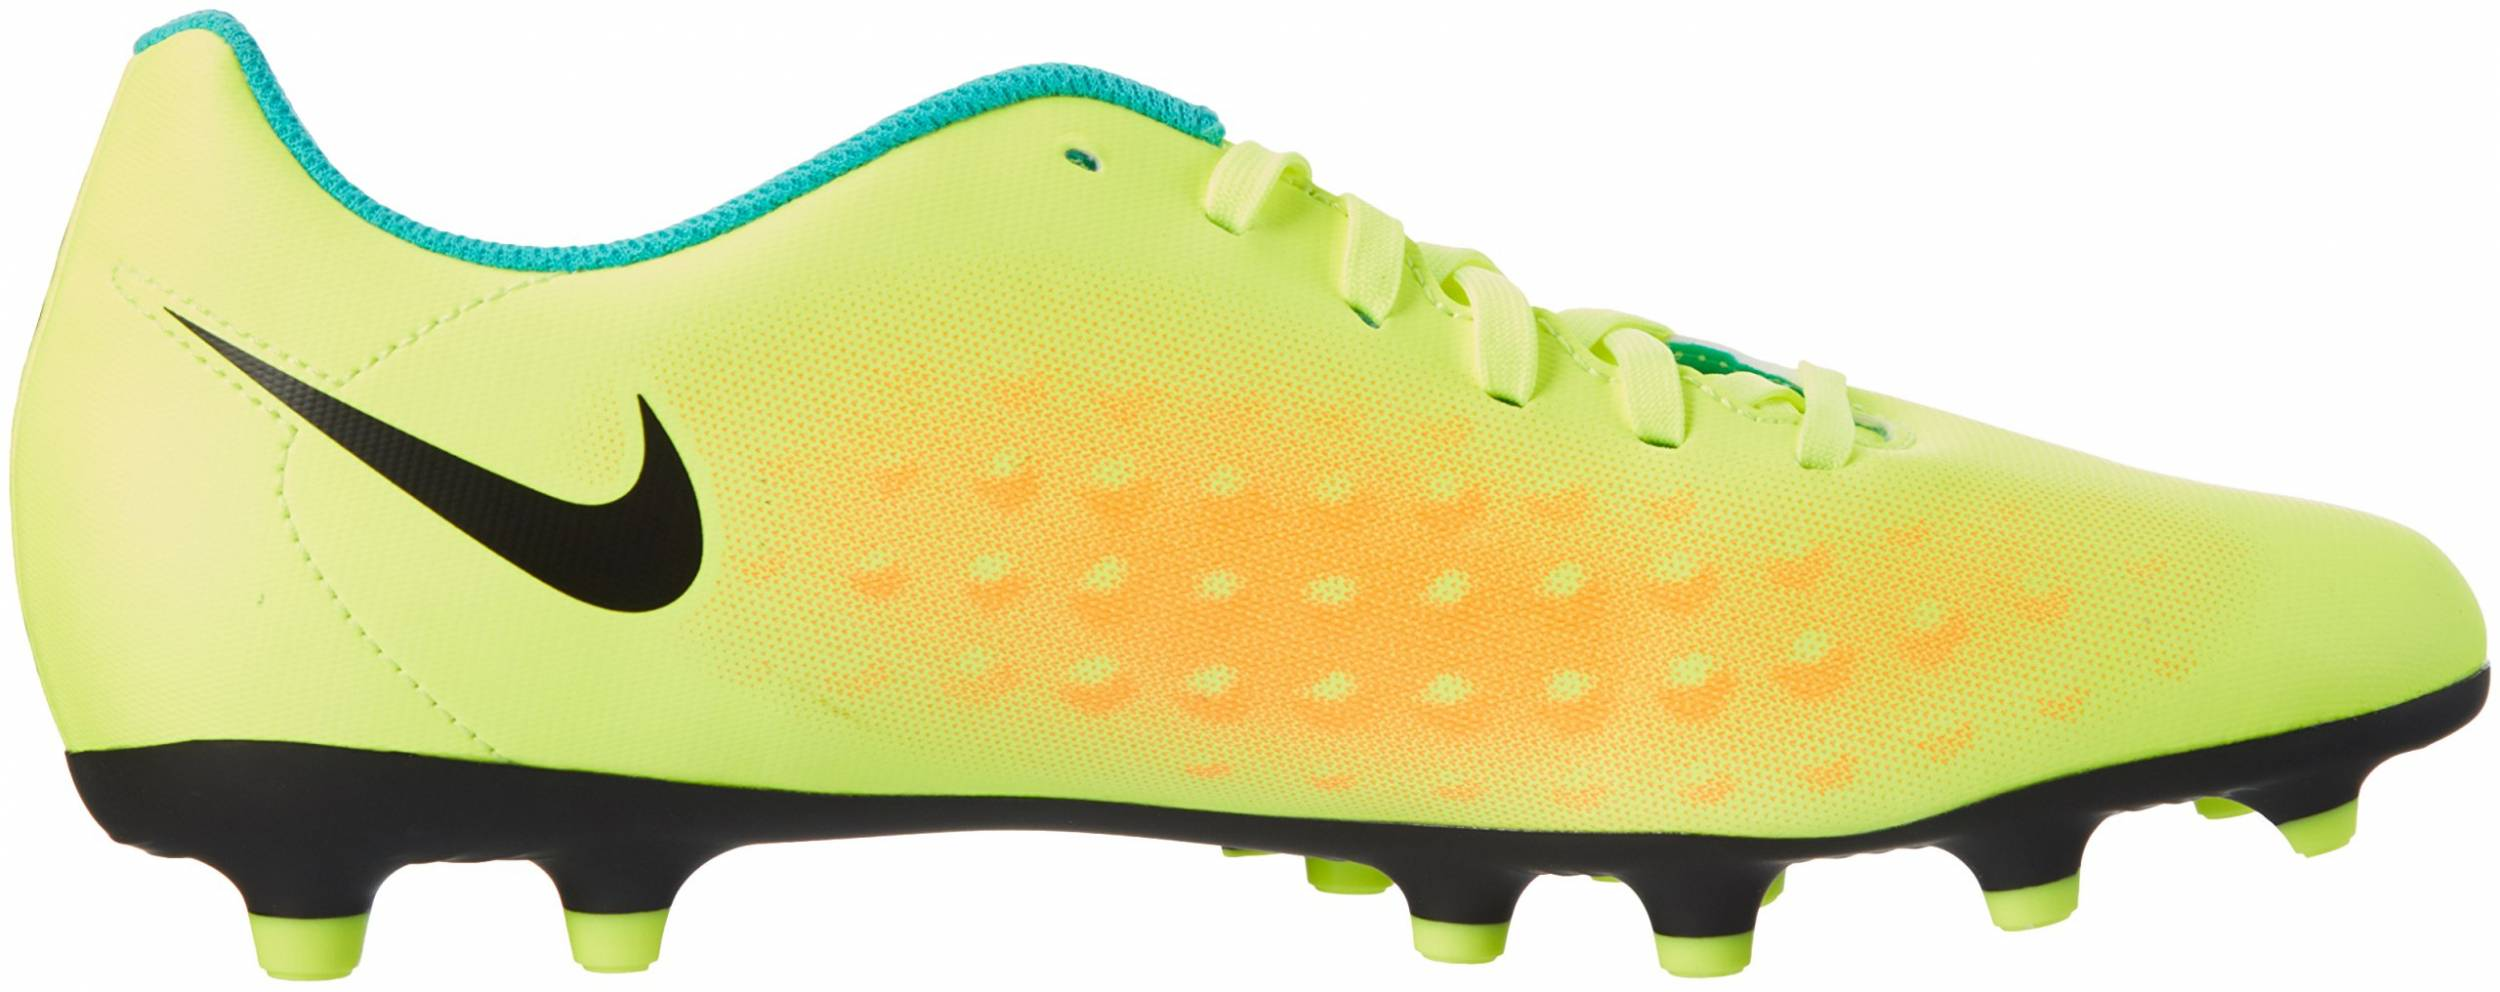 retroceder ancla entregar  8 Reasons to/NOT to Buy Nike Magista Ola II Firm Ground (Jan 2021) |  RunRepeat